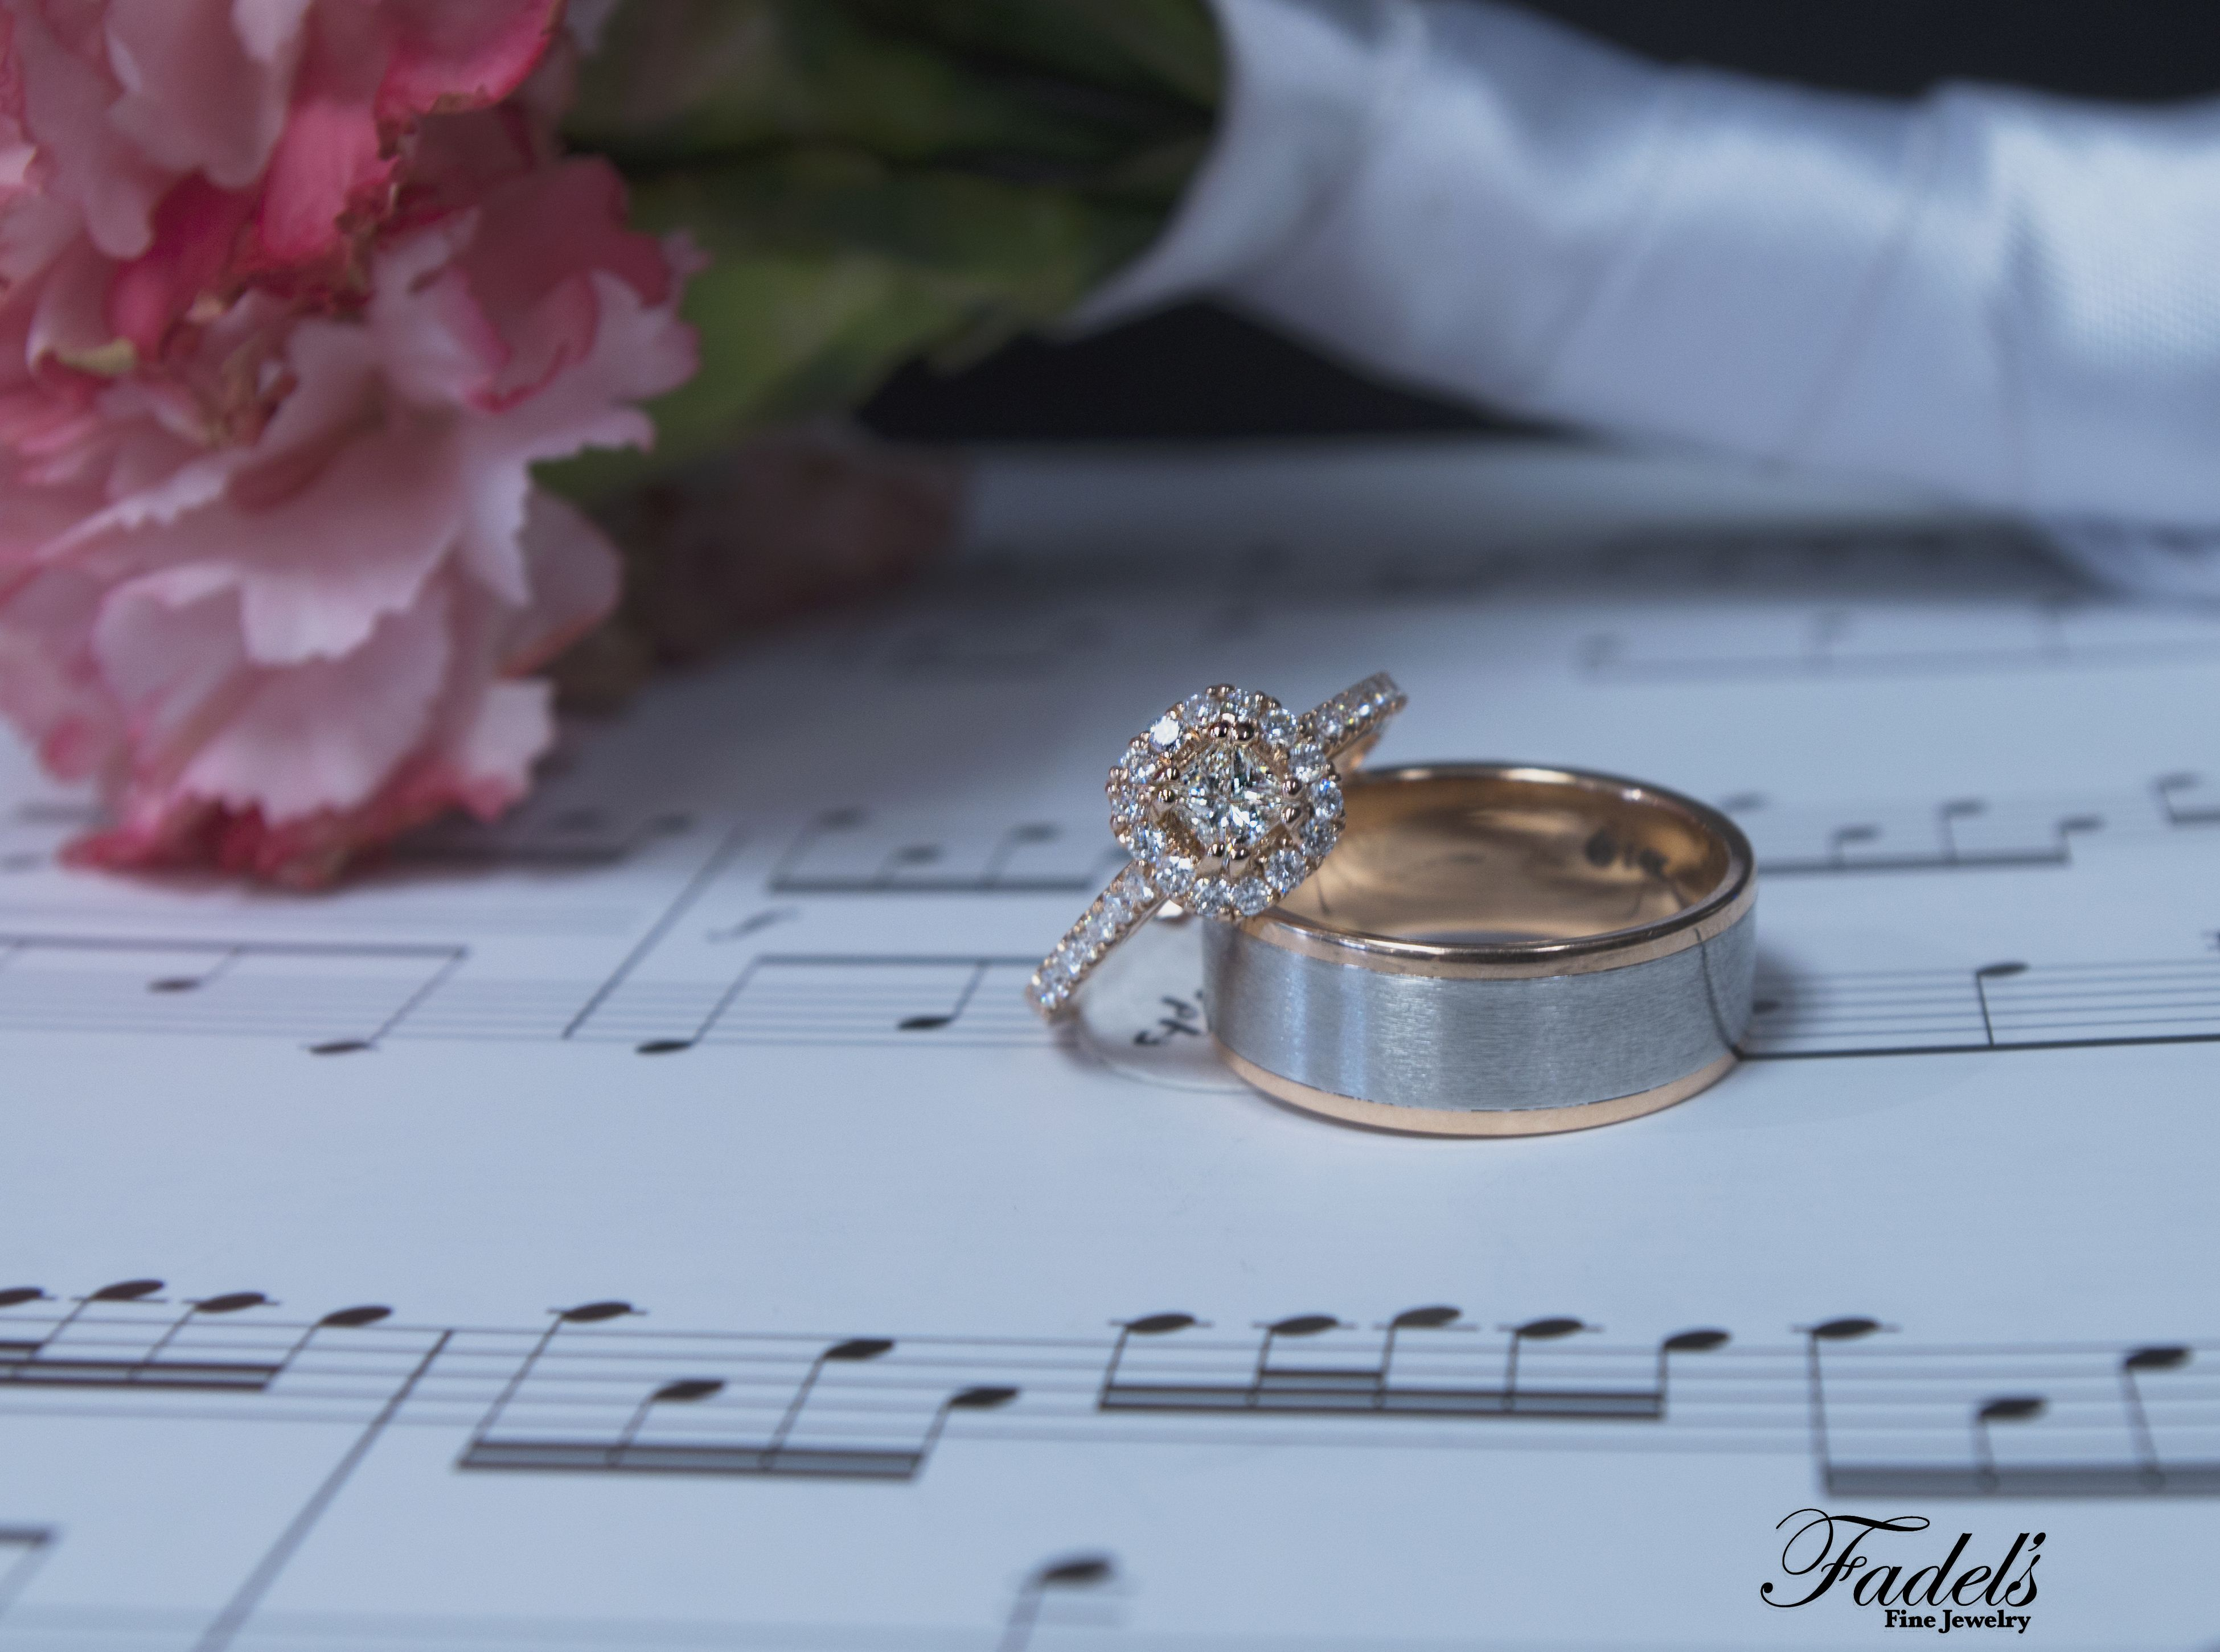 This is a 14K rose gold hallow engagement ring  This ring is